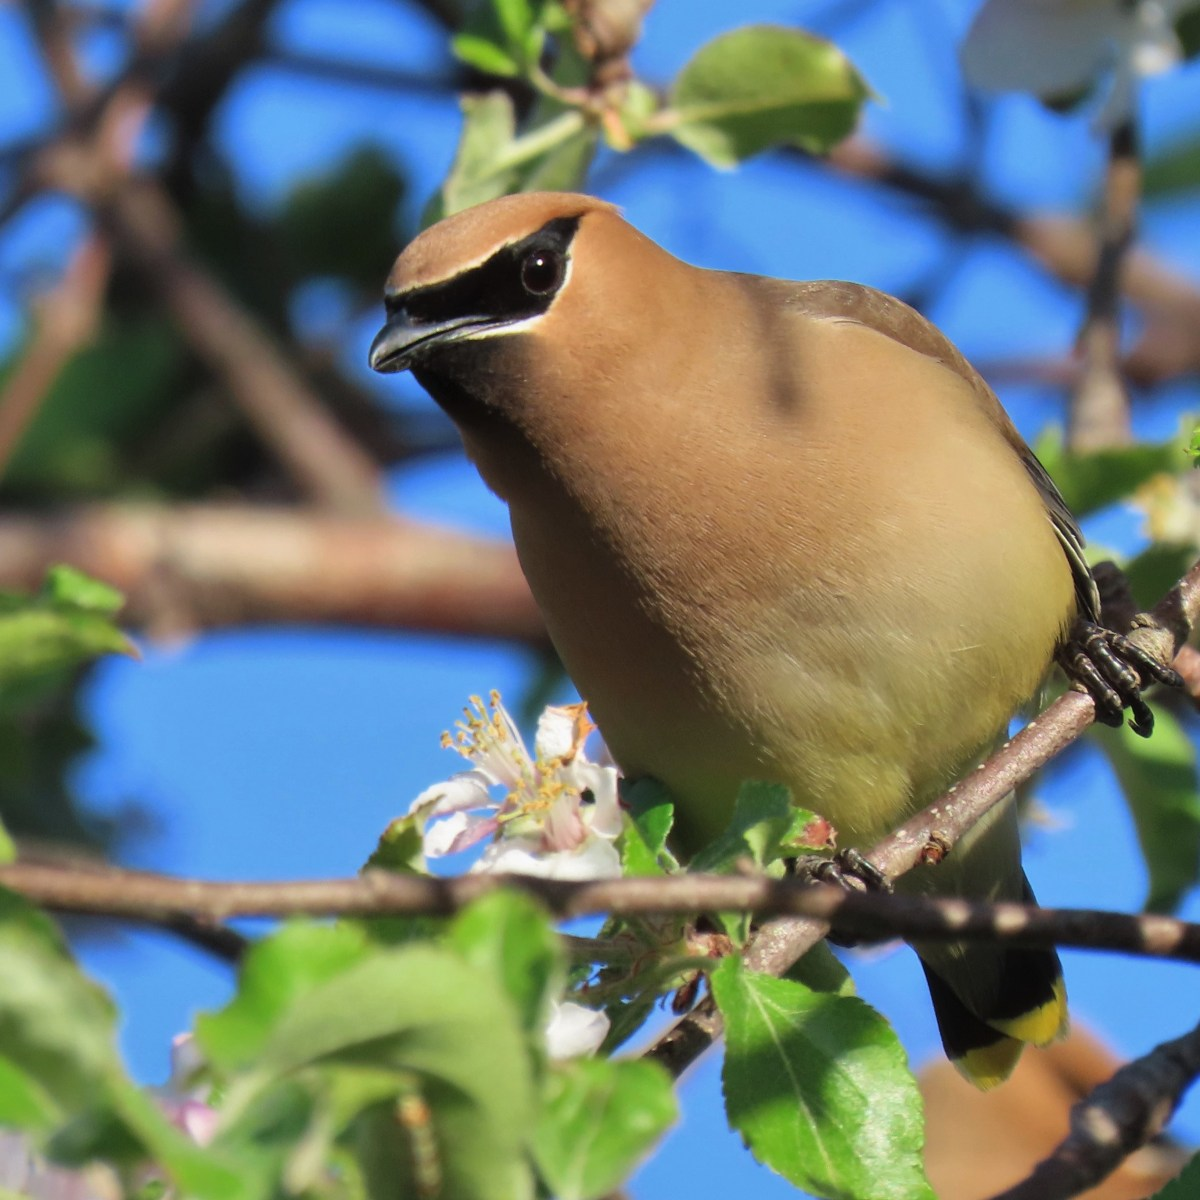 A Cedar Waxing perched on a branch